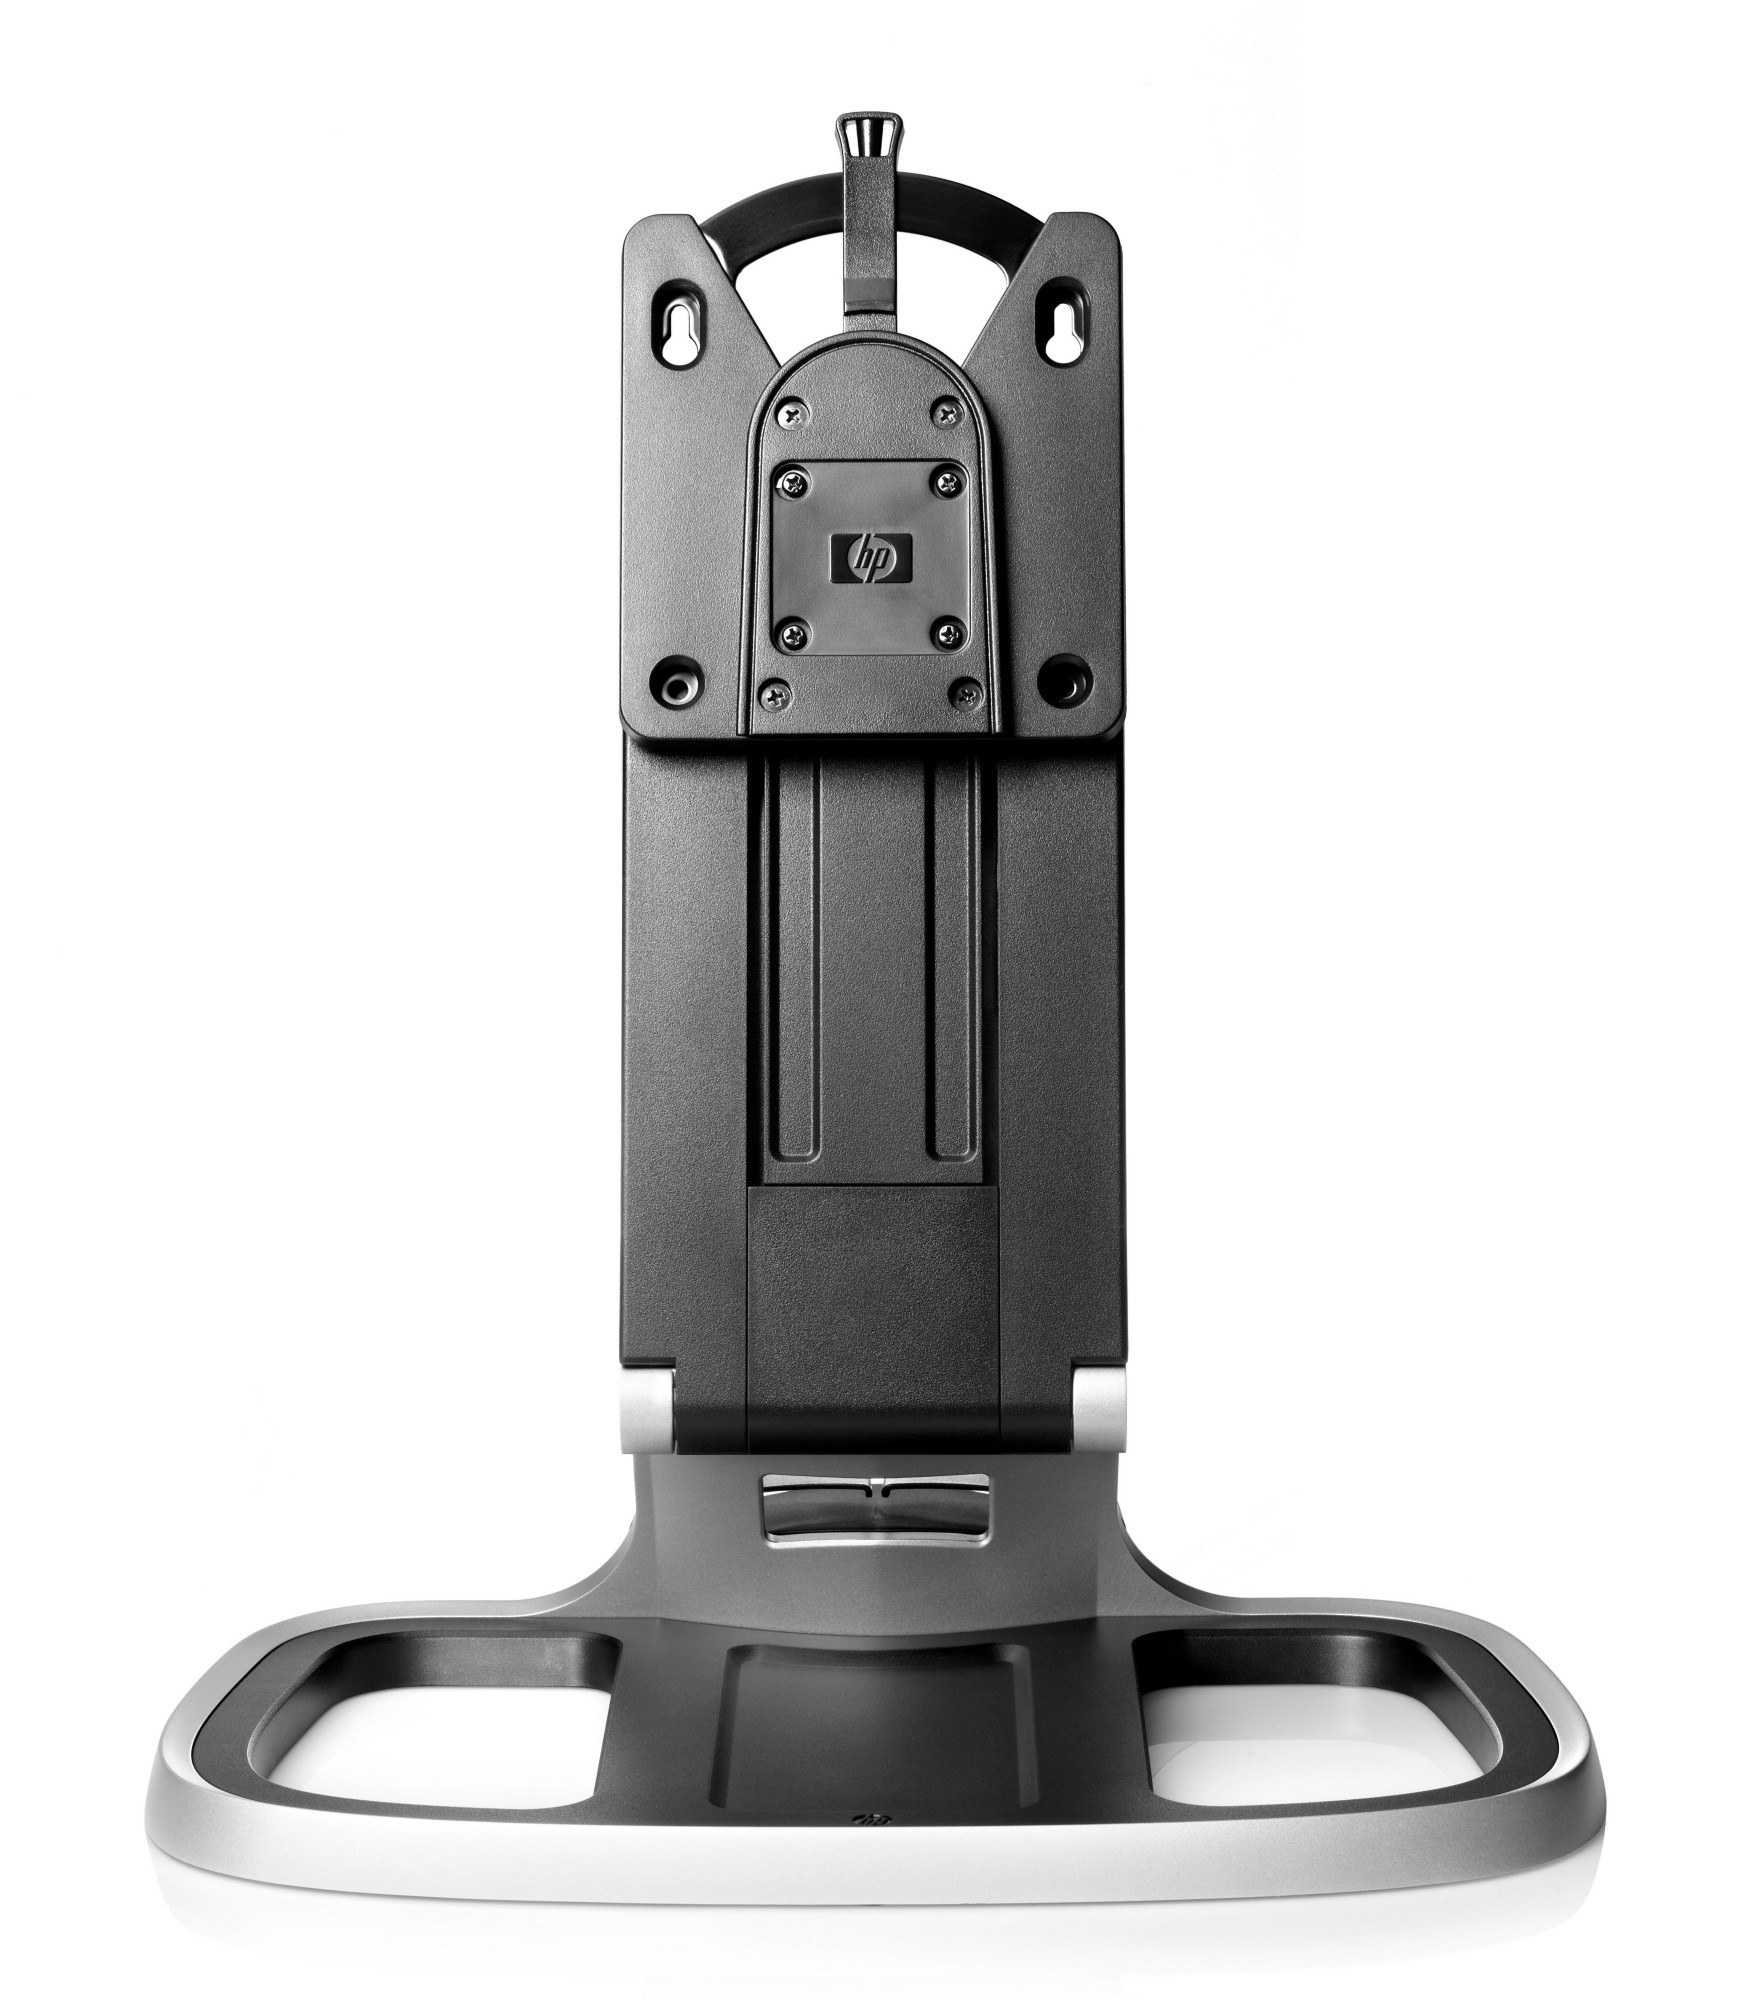 Integrated Work Center Stand for Ultra Slim Desktop and Thin Client